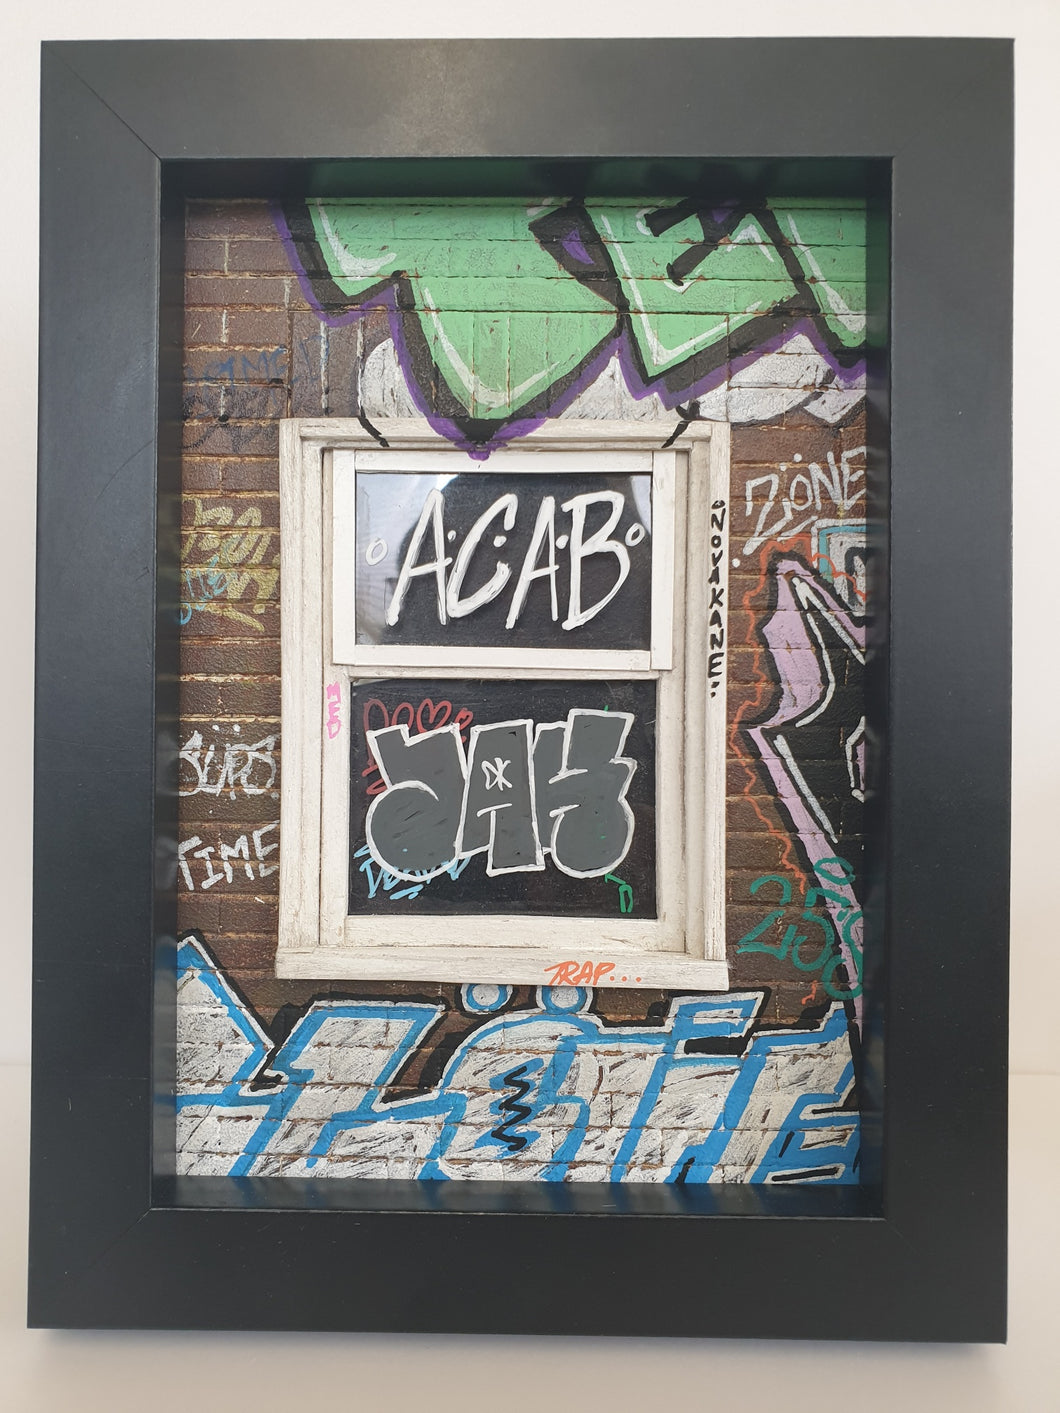 96 to go- Jerome White - ACAB Window Framed